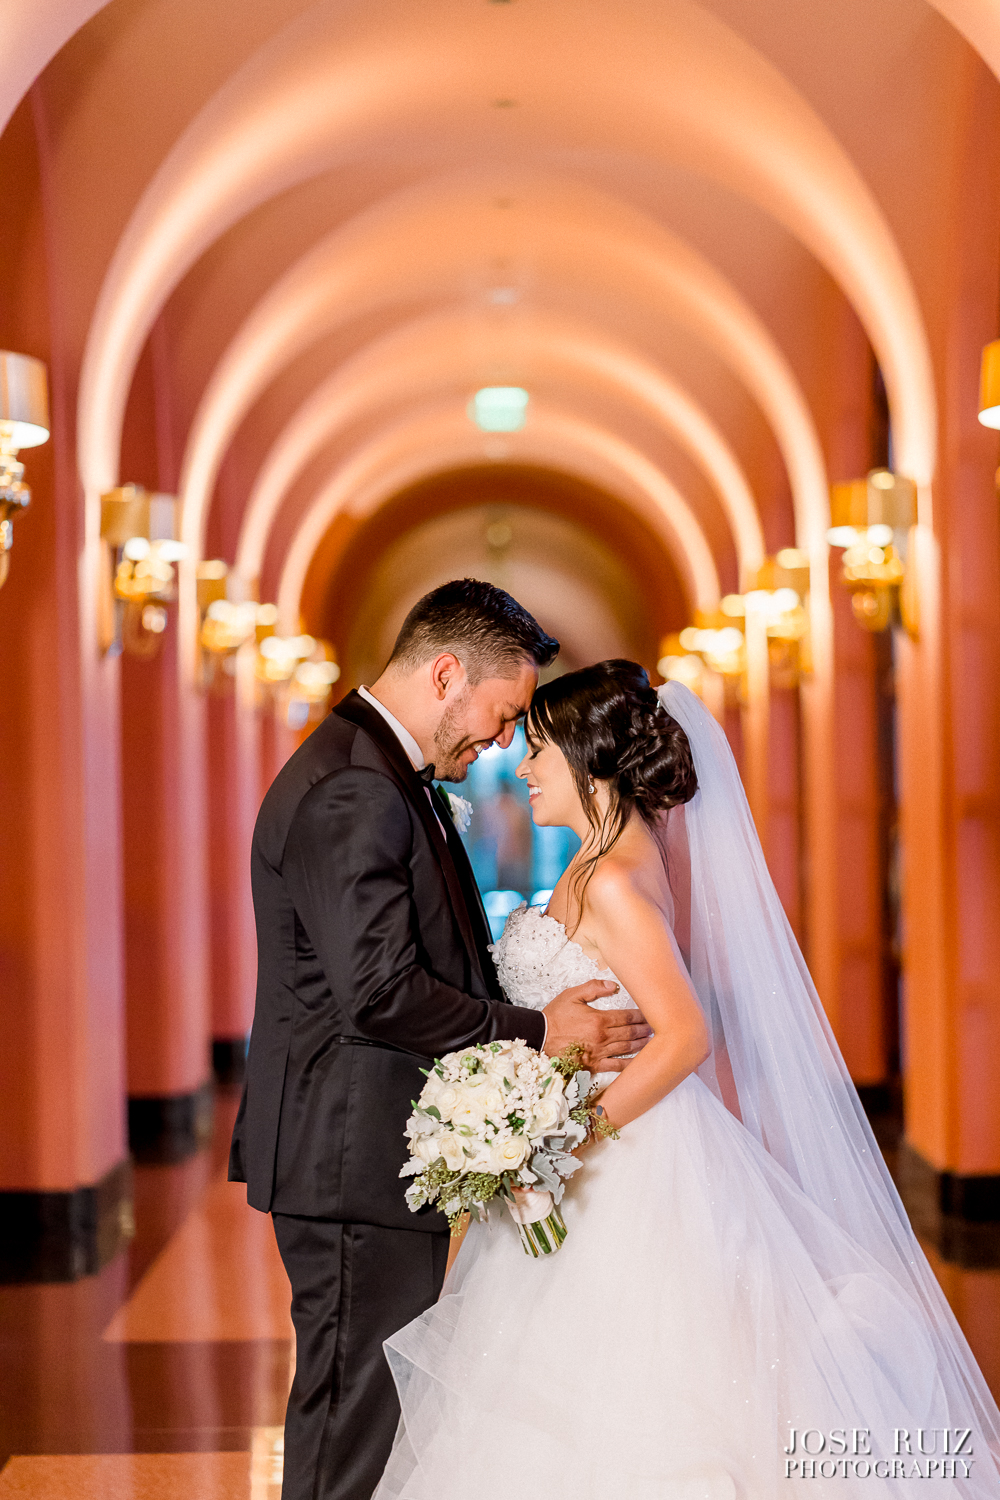 Jose Ruiz Photography- Madalyn & Joel-0040.jpg